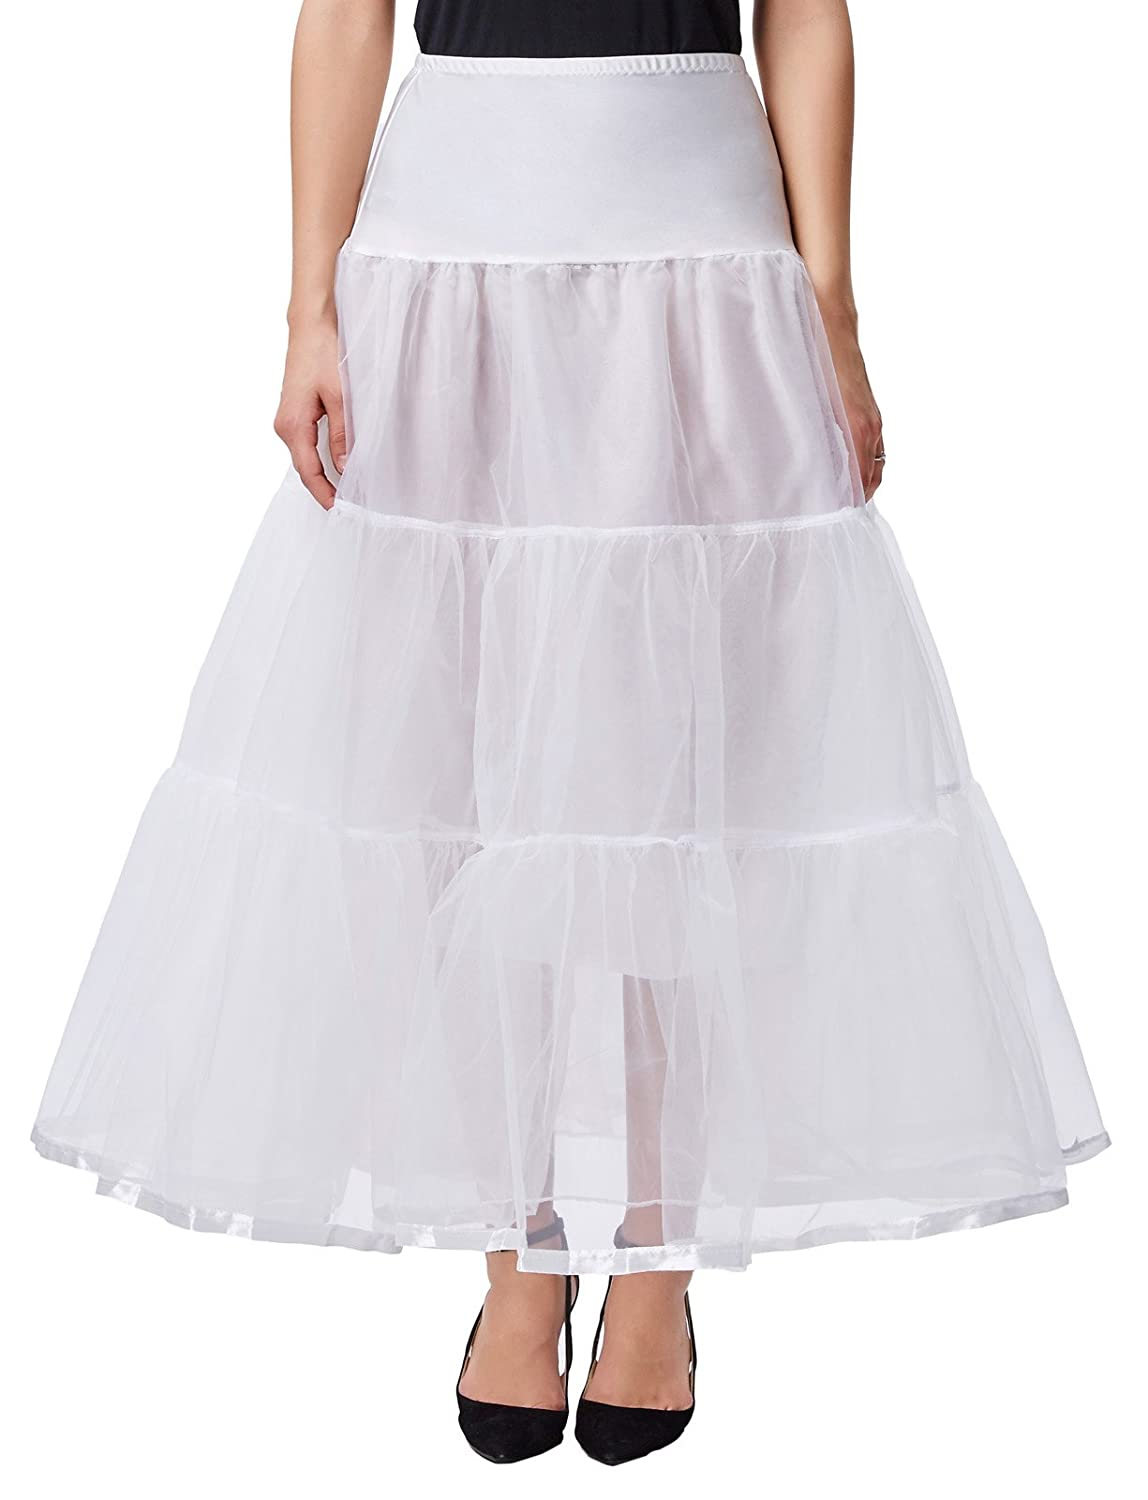 1950s Crinoline Skirt | Crinoline Slips | Crinoline Petticoat  Ankle Length Petticoats Wedding Slips Plus Size S-3X GRACE KARIN Womens $19.99 AT vintagedancer.com